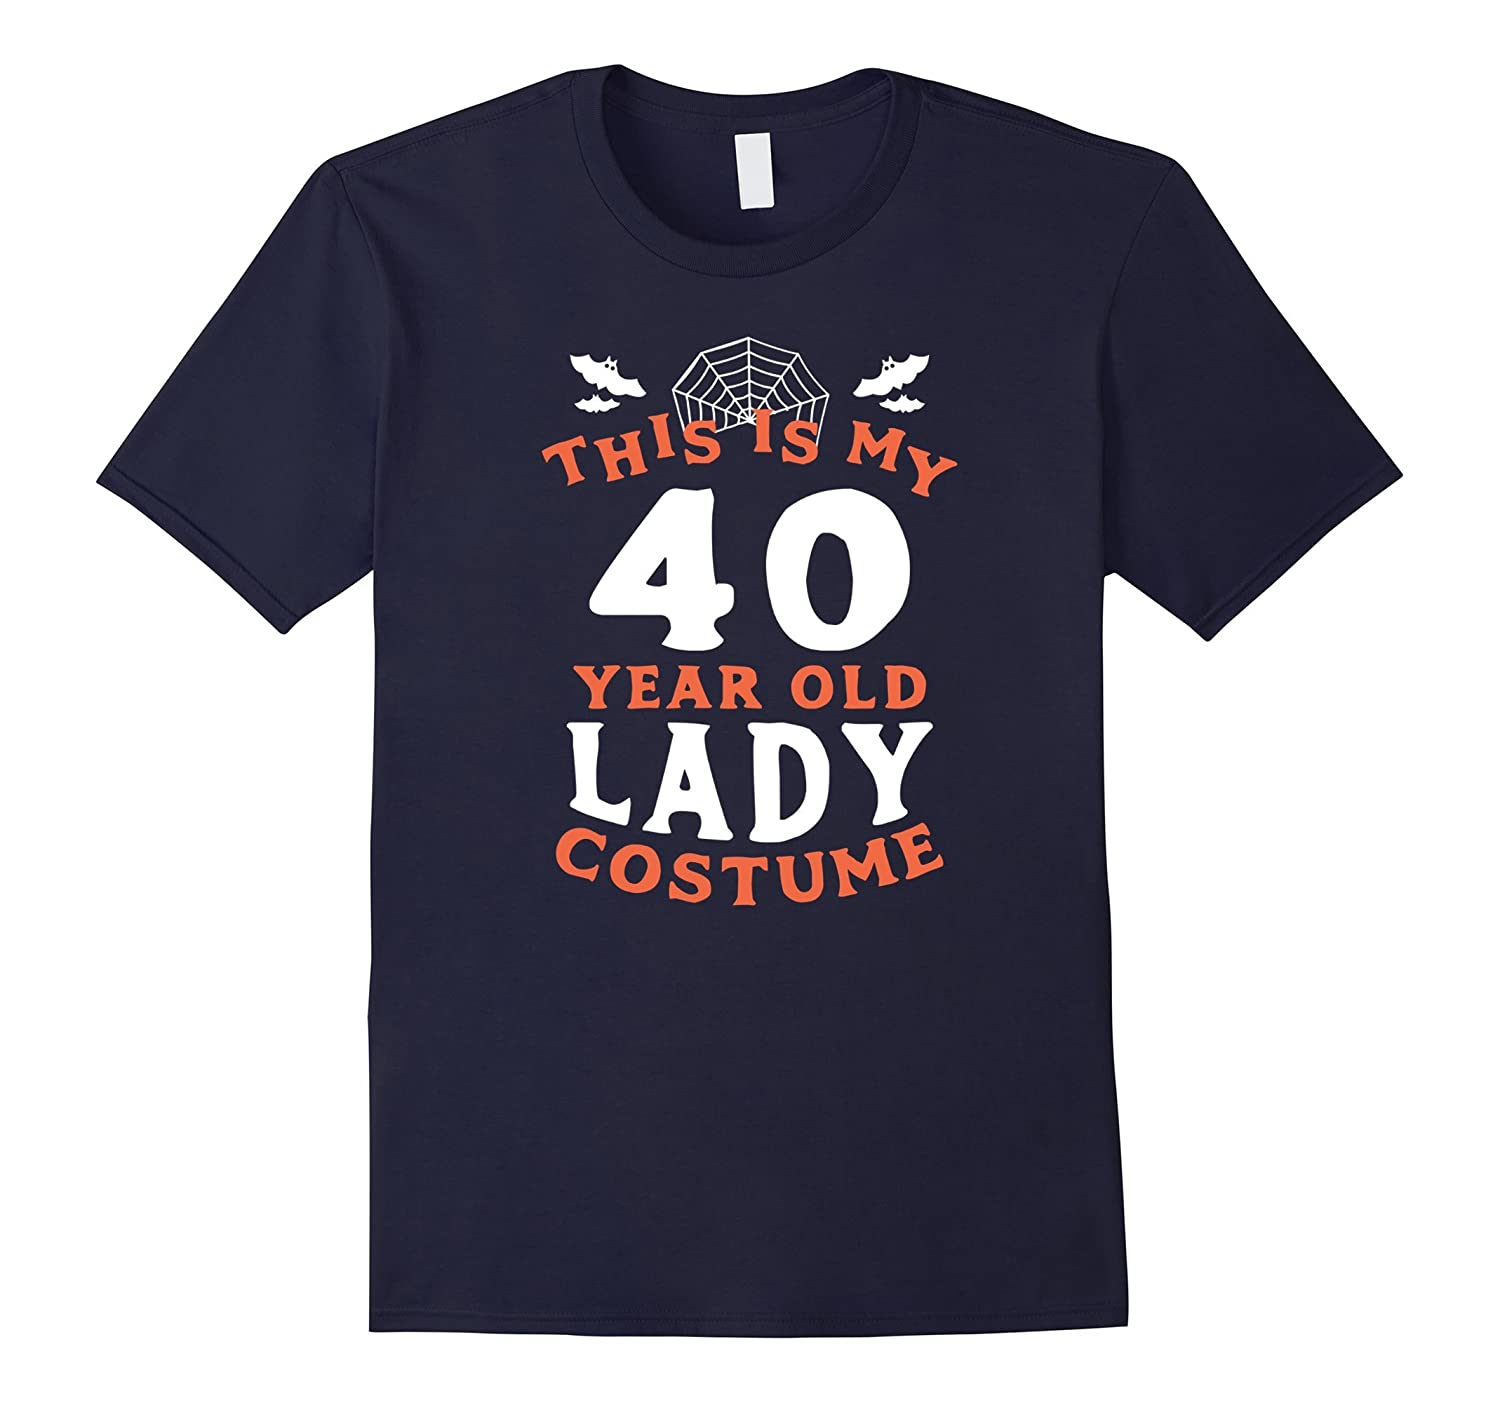 40 Year Old Lady Costume - Funny Women's Halloween T-Shirt-4LVS